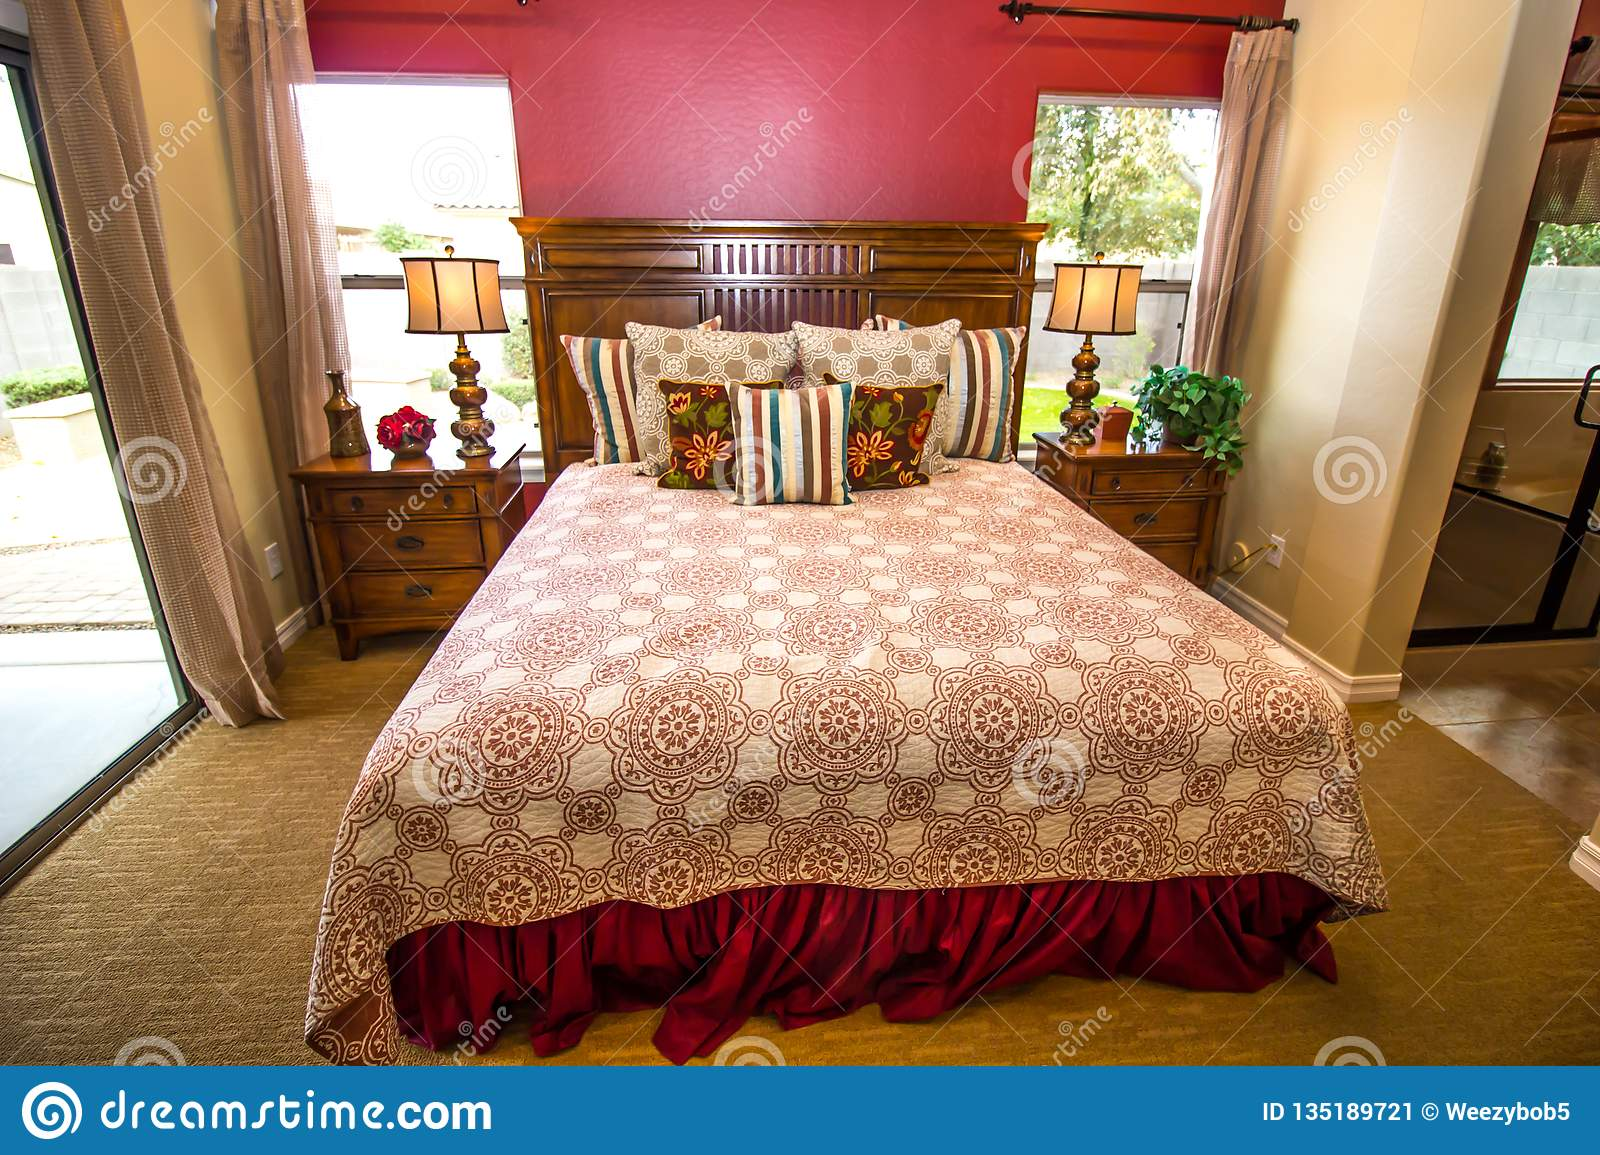 Master Bedroom With Wooden Nightstands And Lamps Stock Image Image Of Deorator Tree 135189721